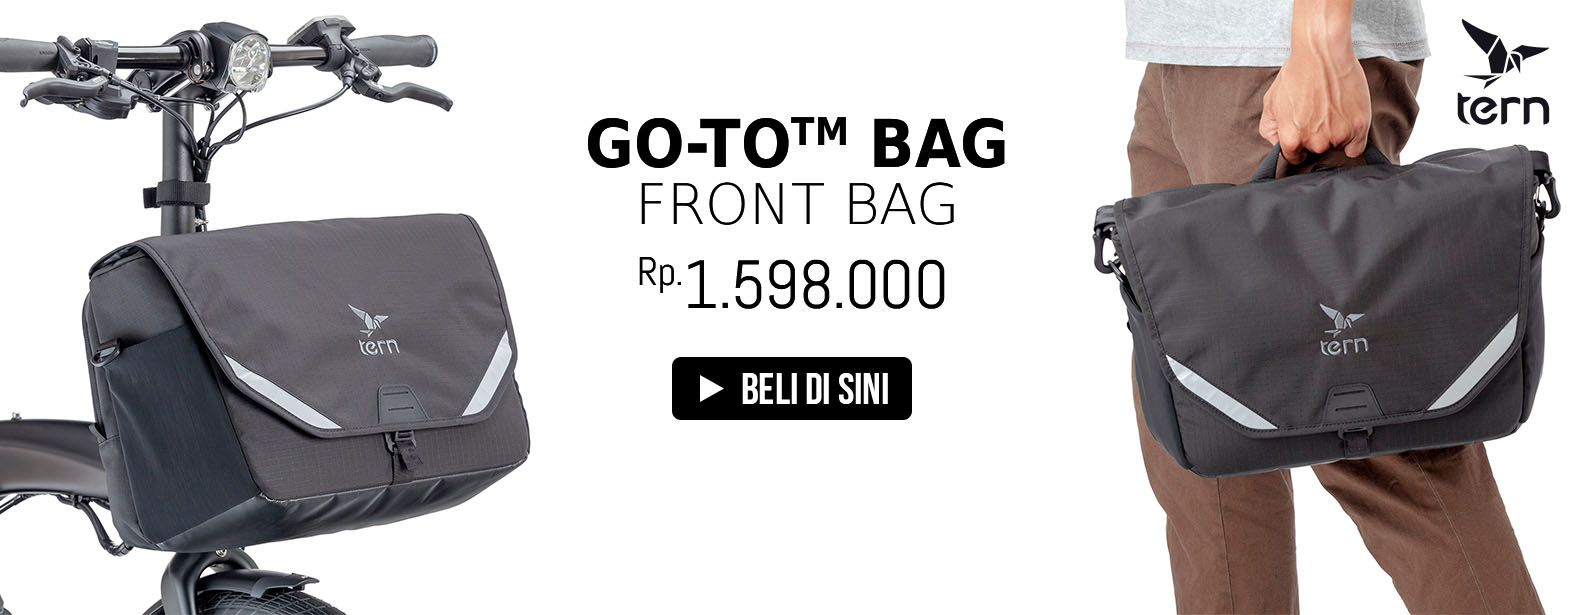 Tern Front Bag Sepeda Go To Bag for Luggage Truss